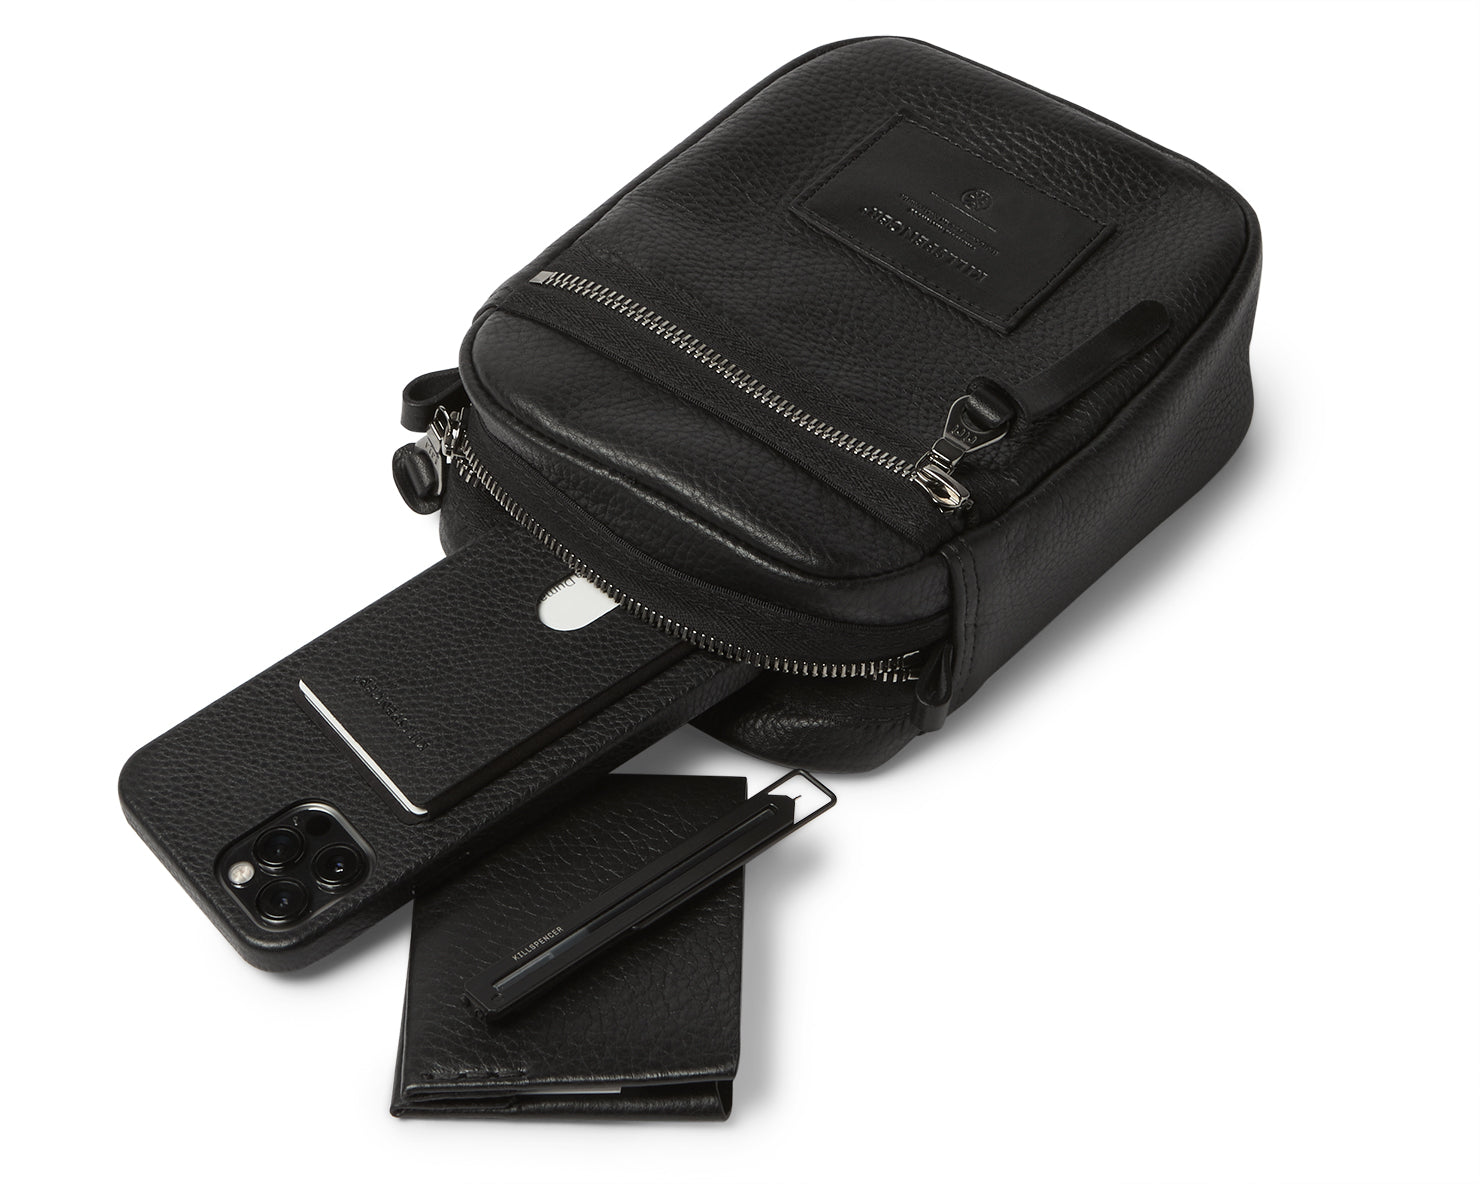 EDC BAG - SMALL | KILLSPENCER® - Black Leather